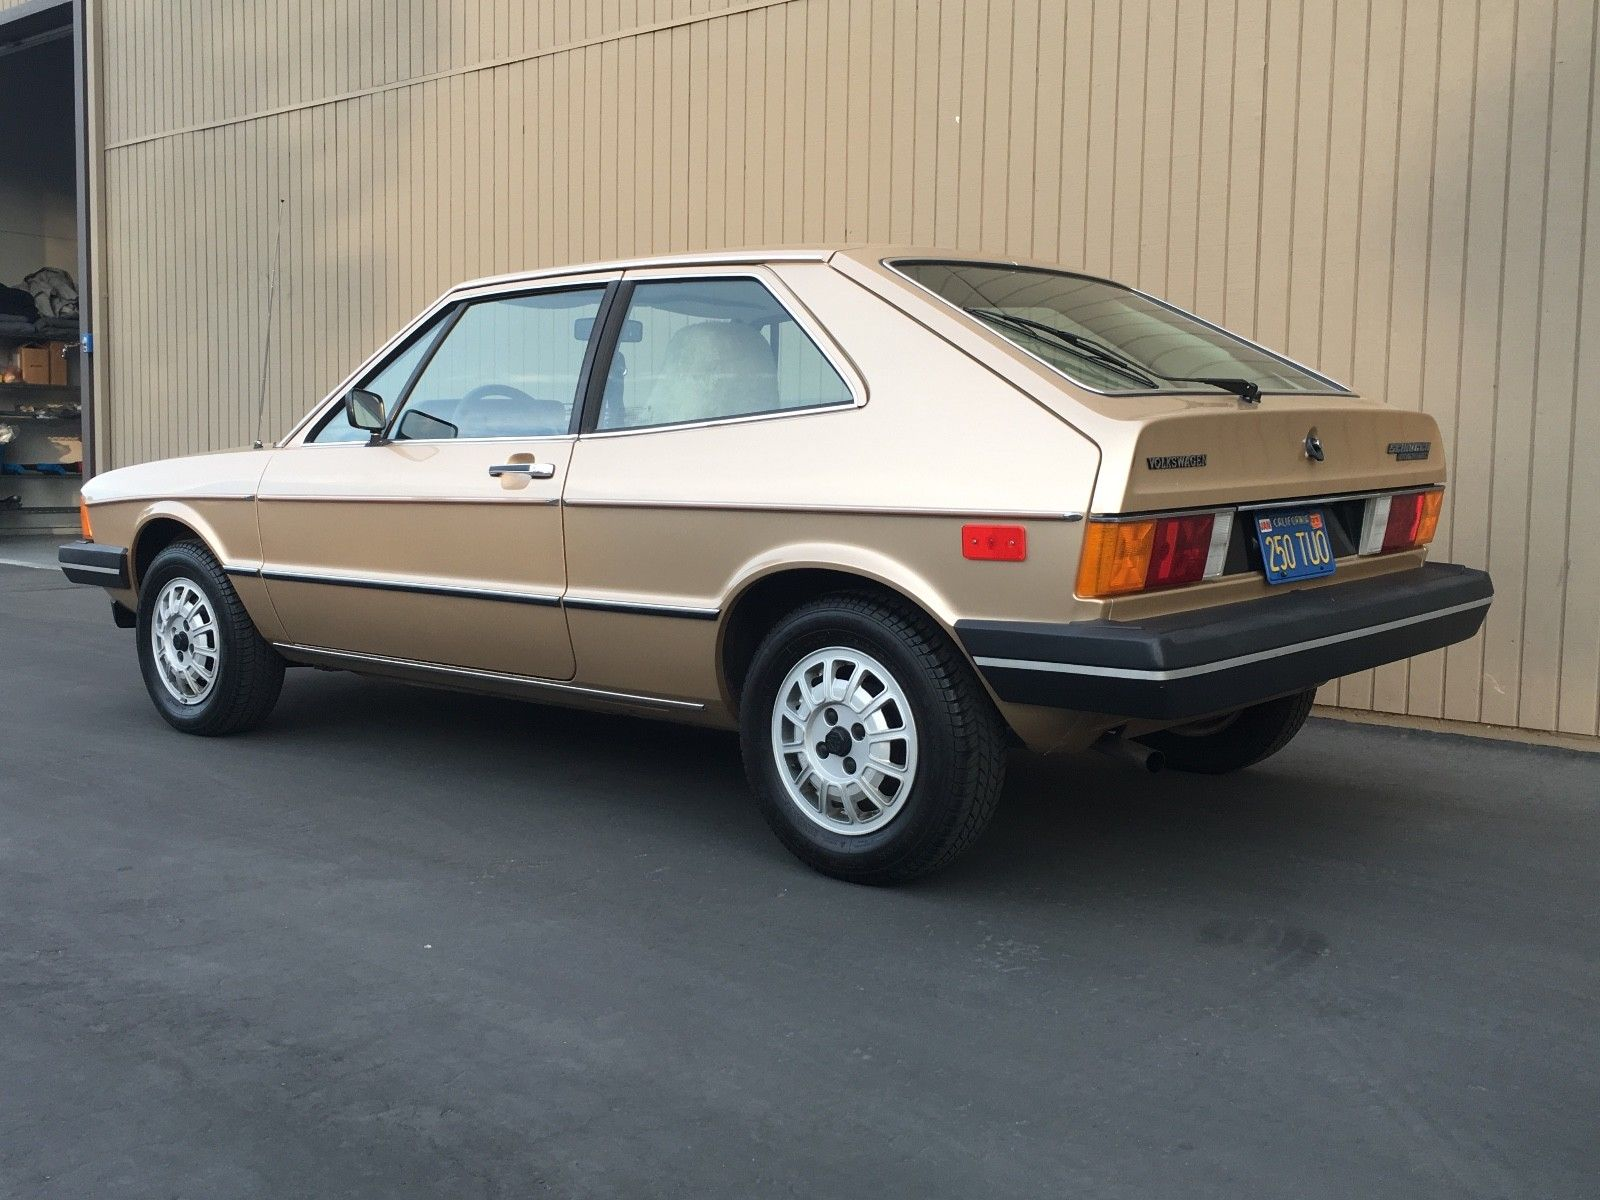 1978 Volkswagen Scirocco rear three quarter